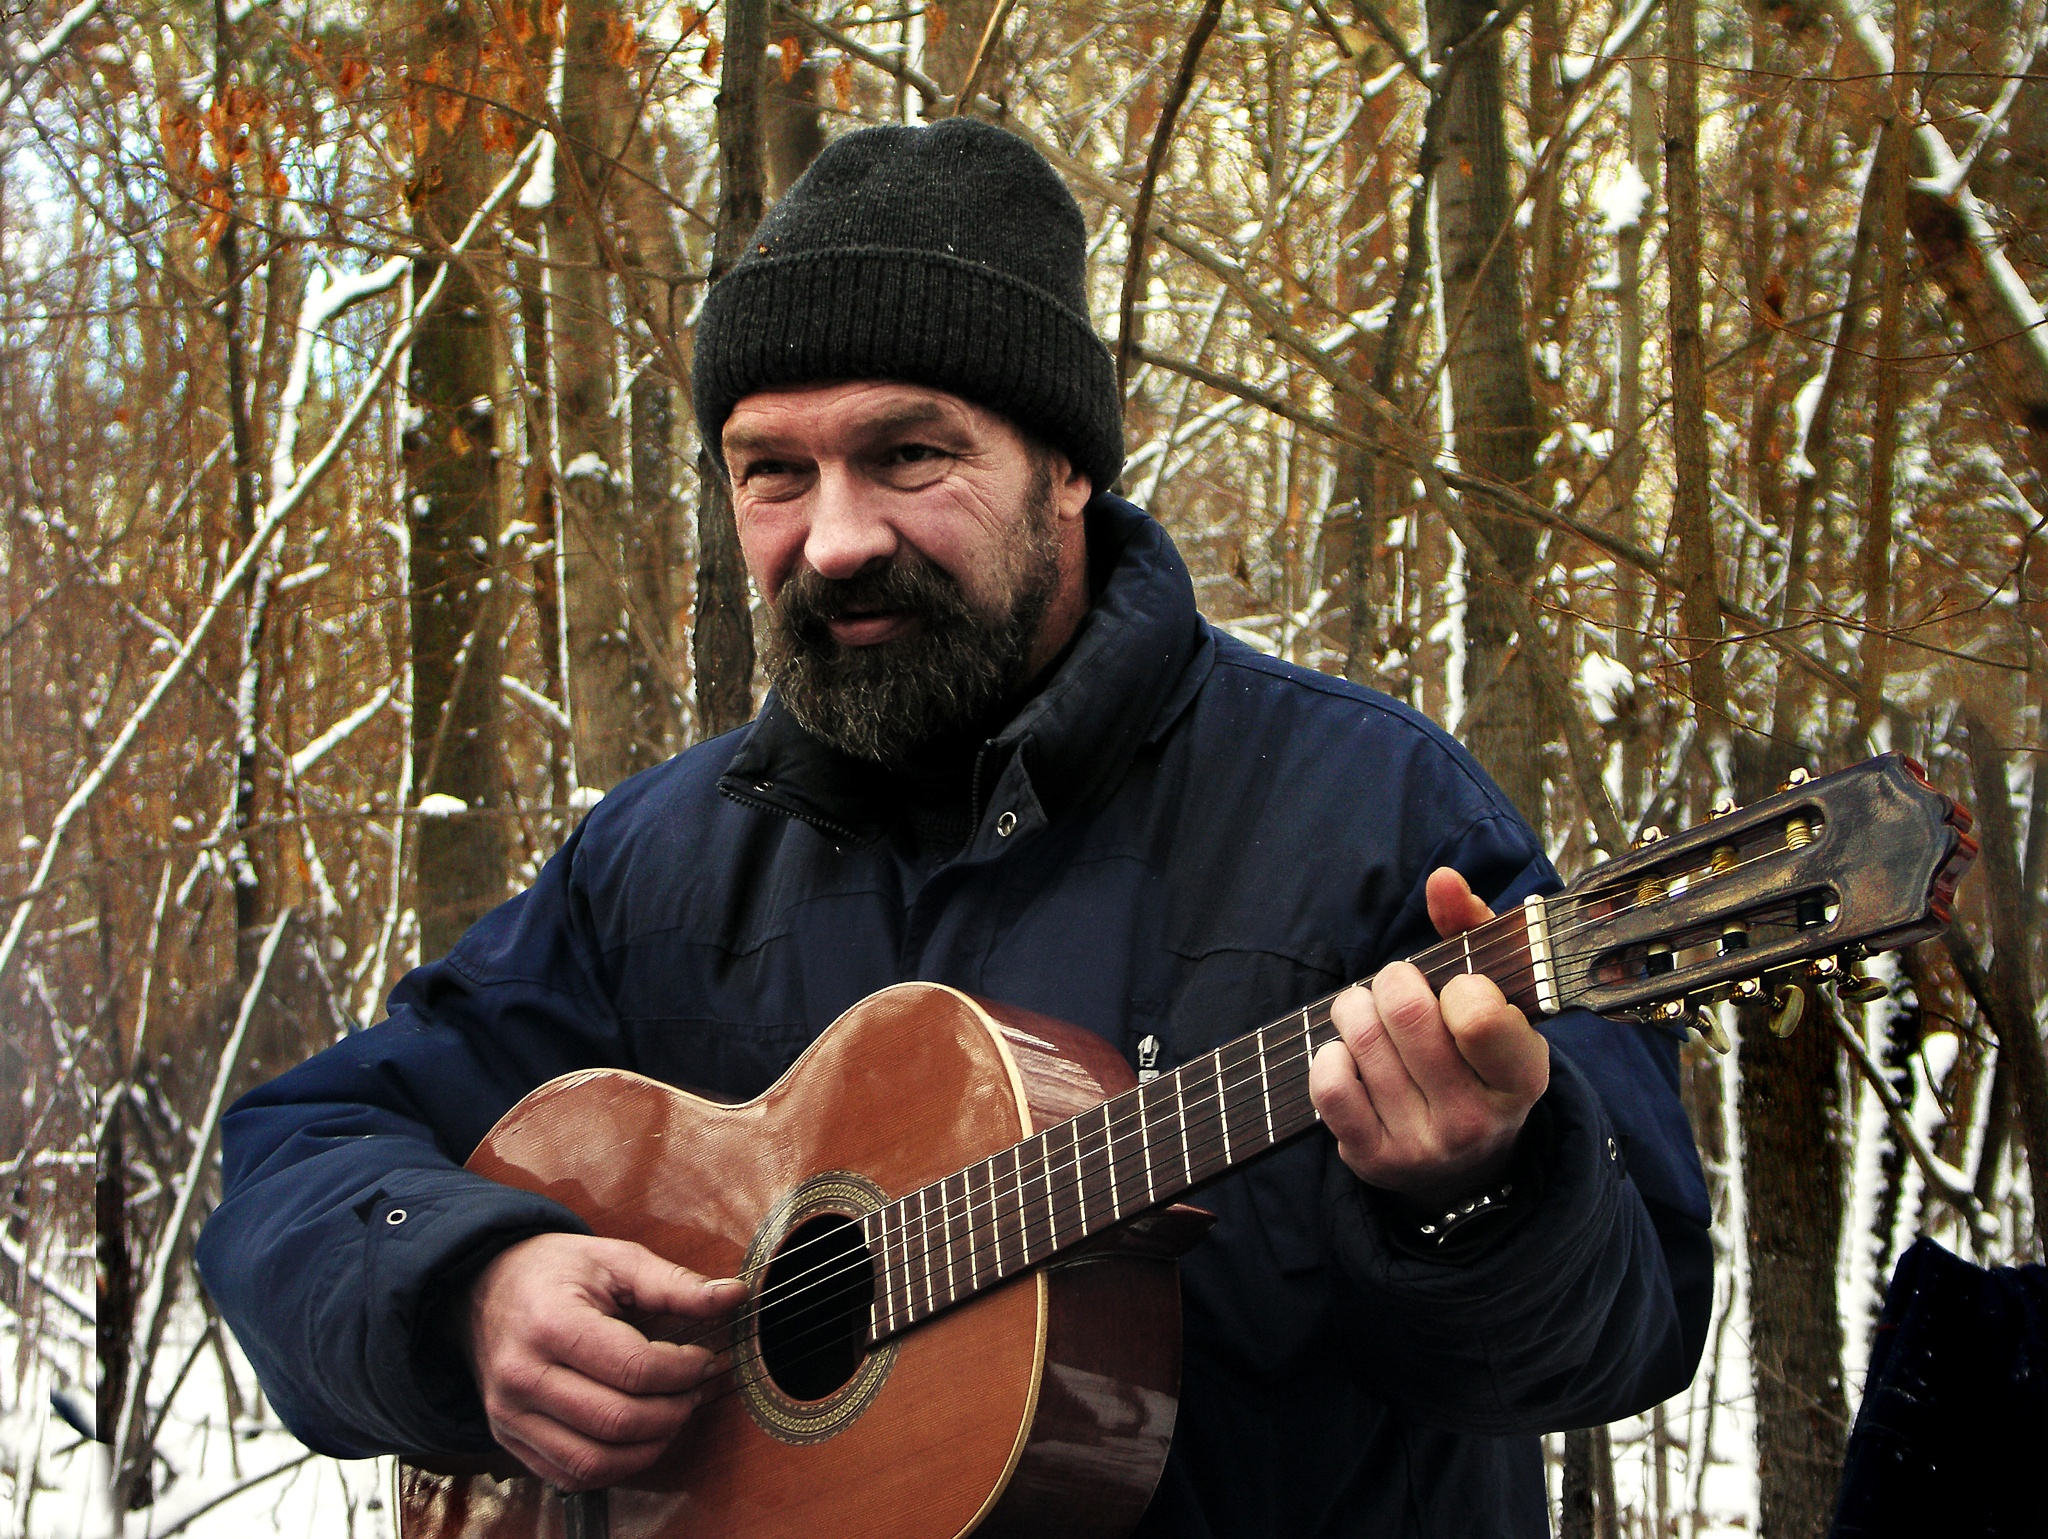 The song in the winter forest by Сергей Юрьев